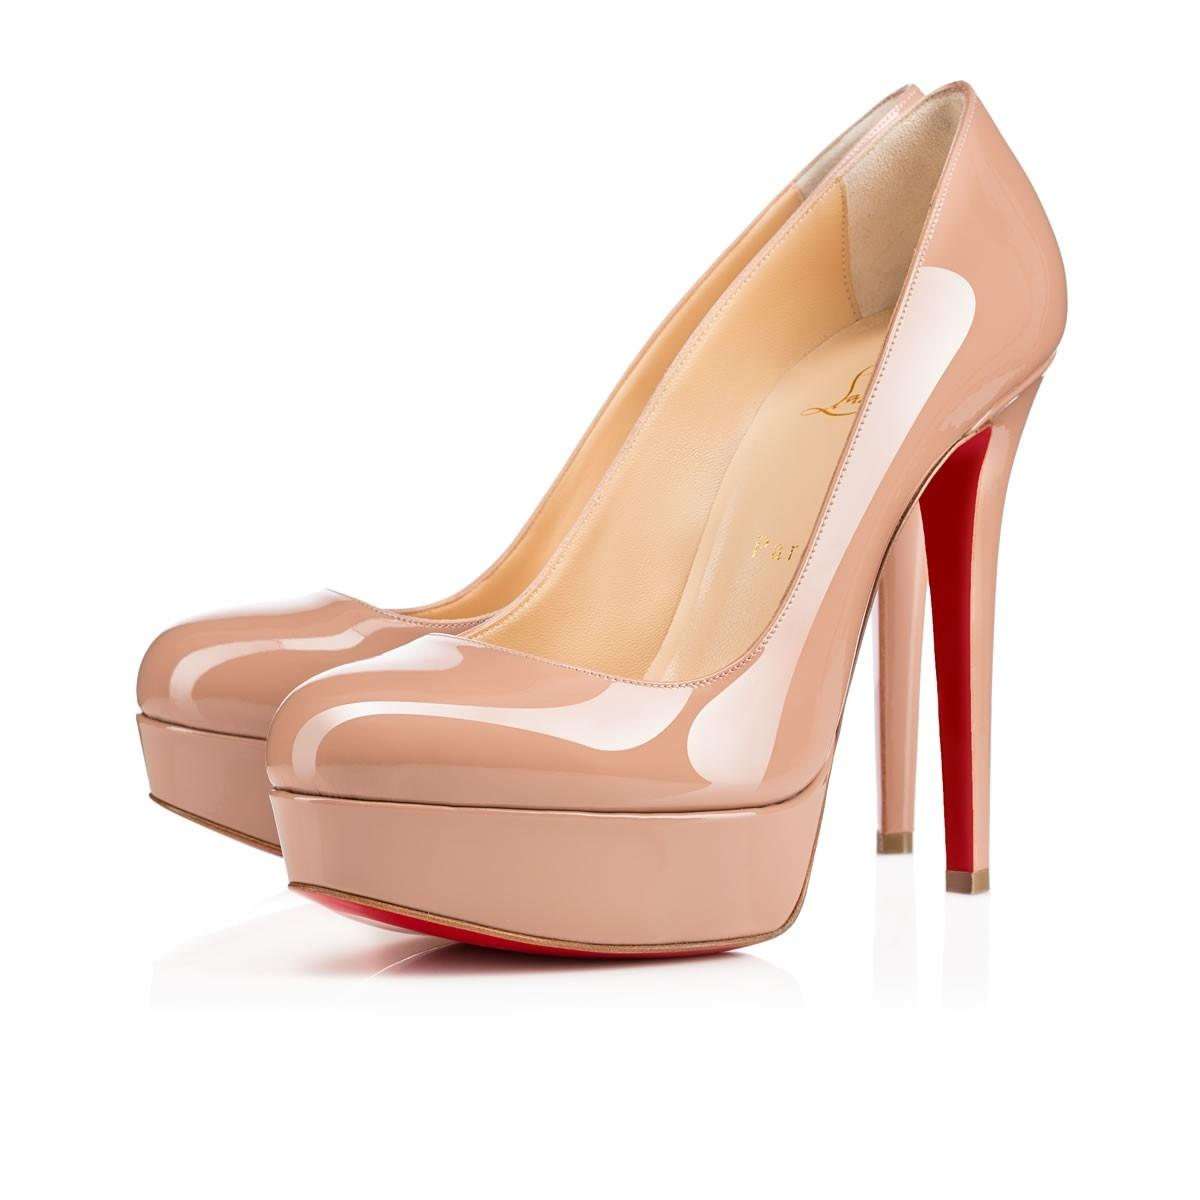 are christian louboutin outlet shoes real